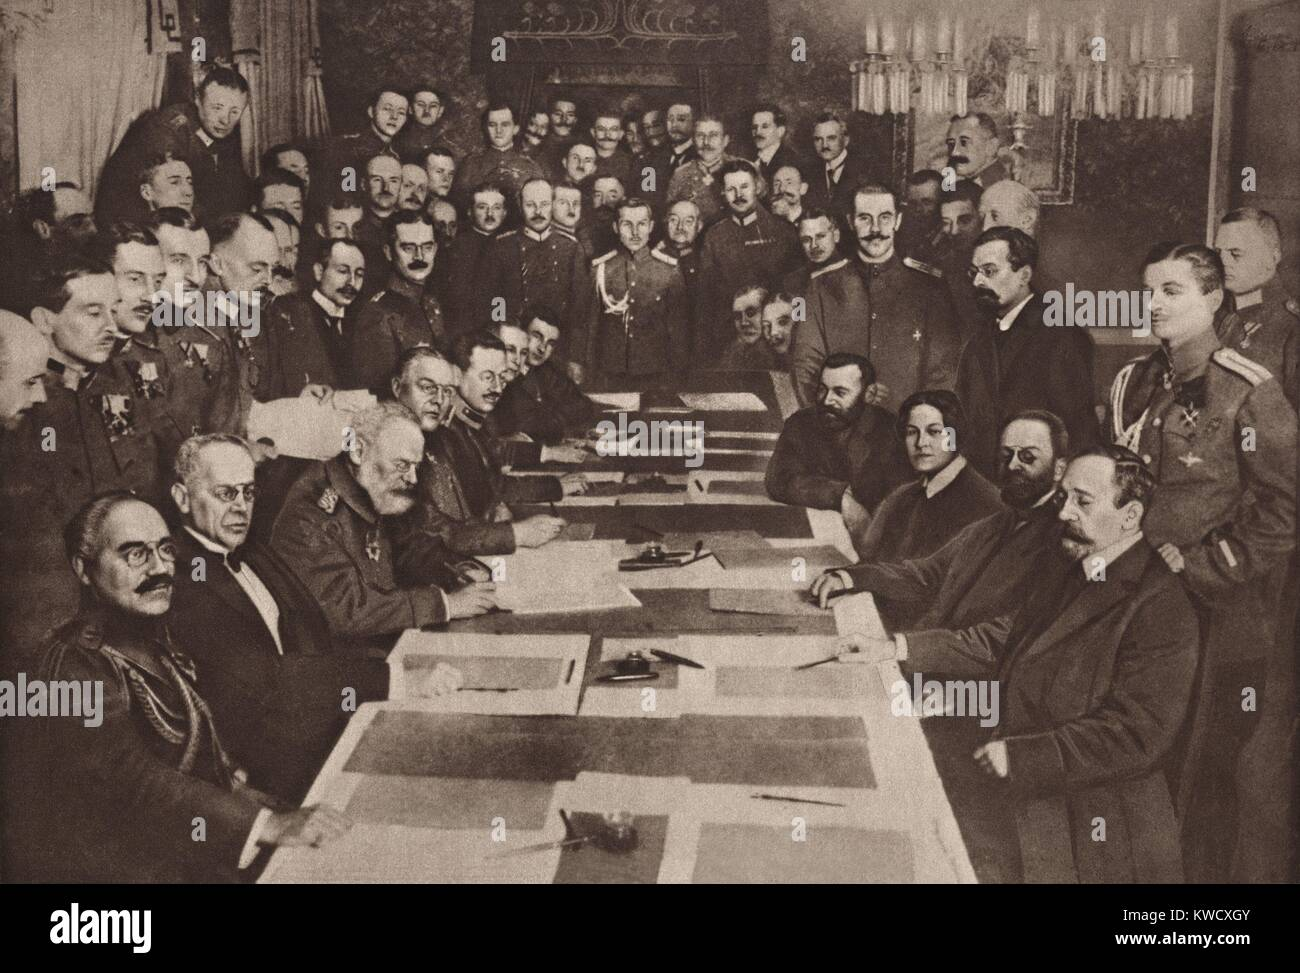 World War 1. The Bolshevik government of Russia signs a separate peace with Central Powers (Austria, Germany, Turkey) - Stock Image